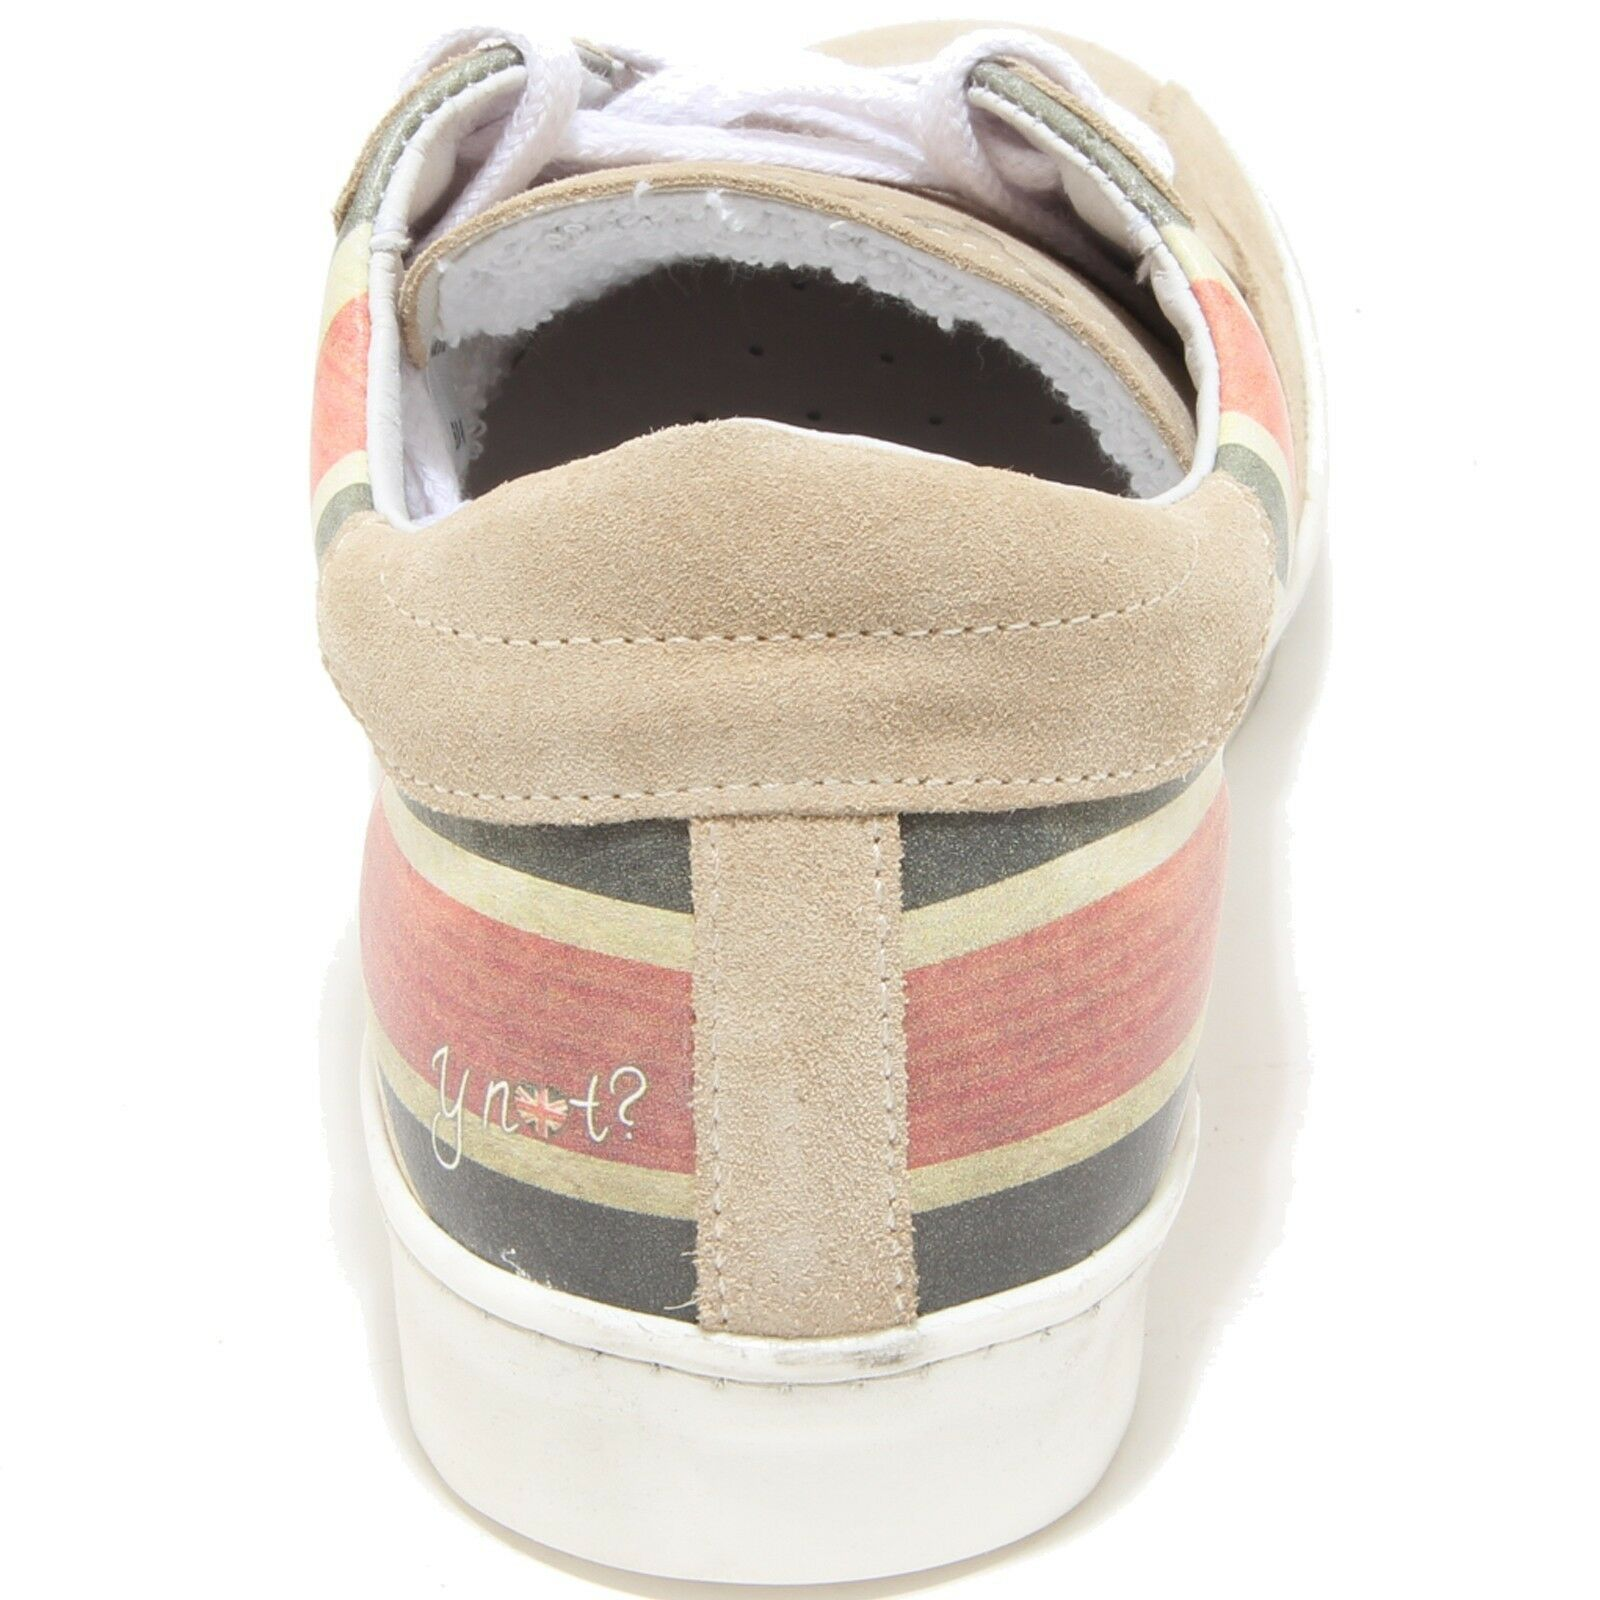 2964I Basket s     Y NOT? flag great britain   Chaussure s Hommes  e34cb3